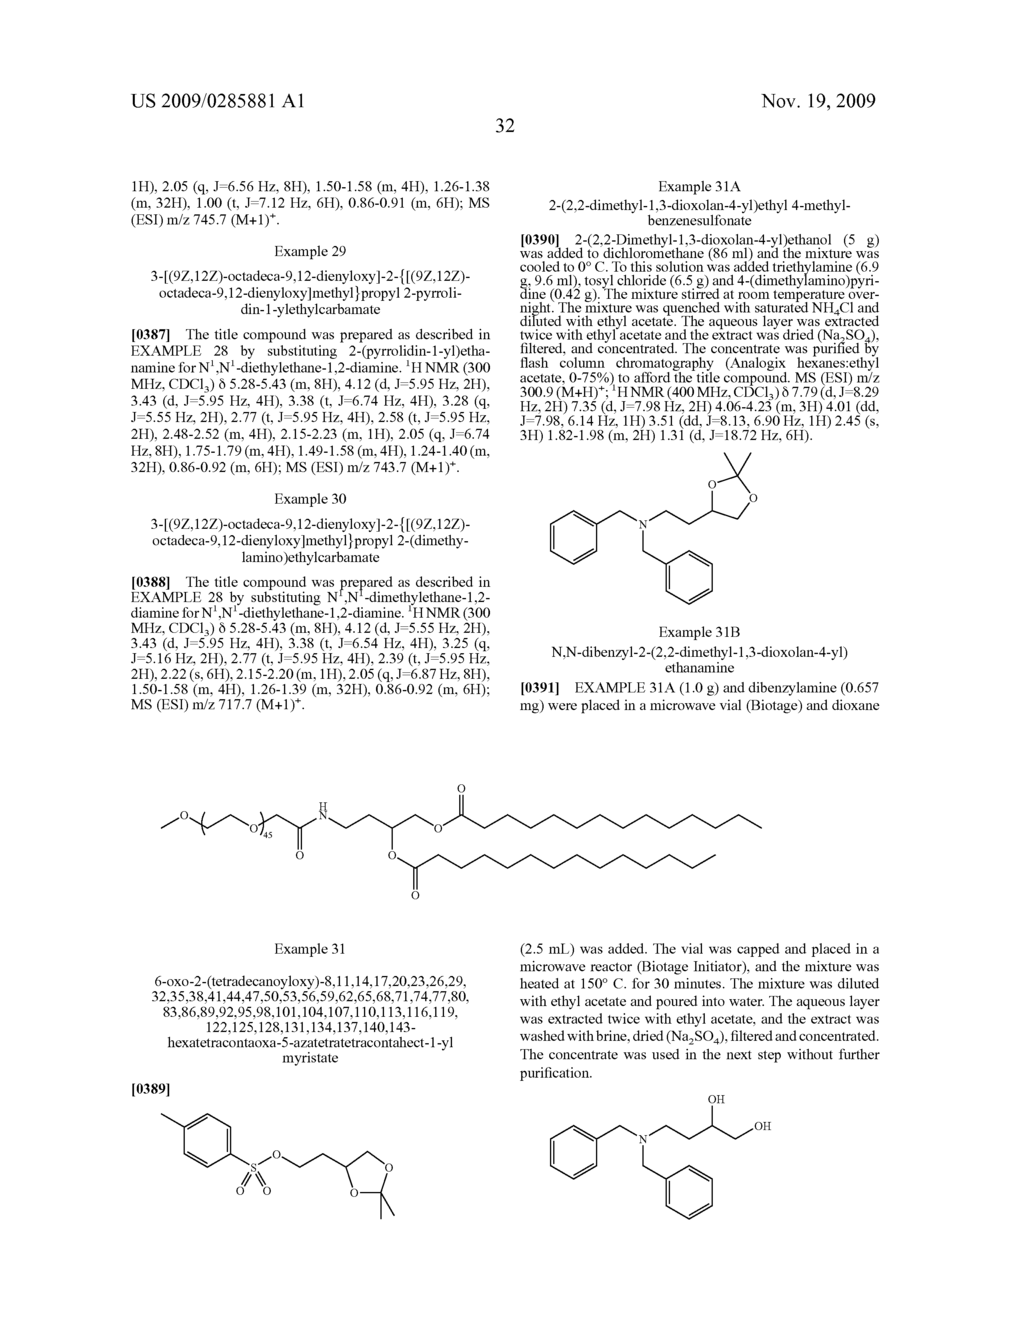 CATIONIC LIPIDS AND USES THEREOF - diagram, schematic, and image 40